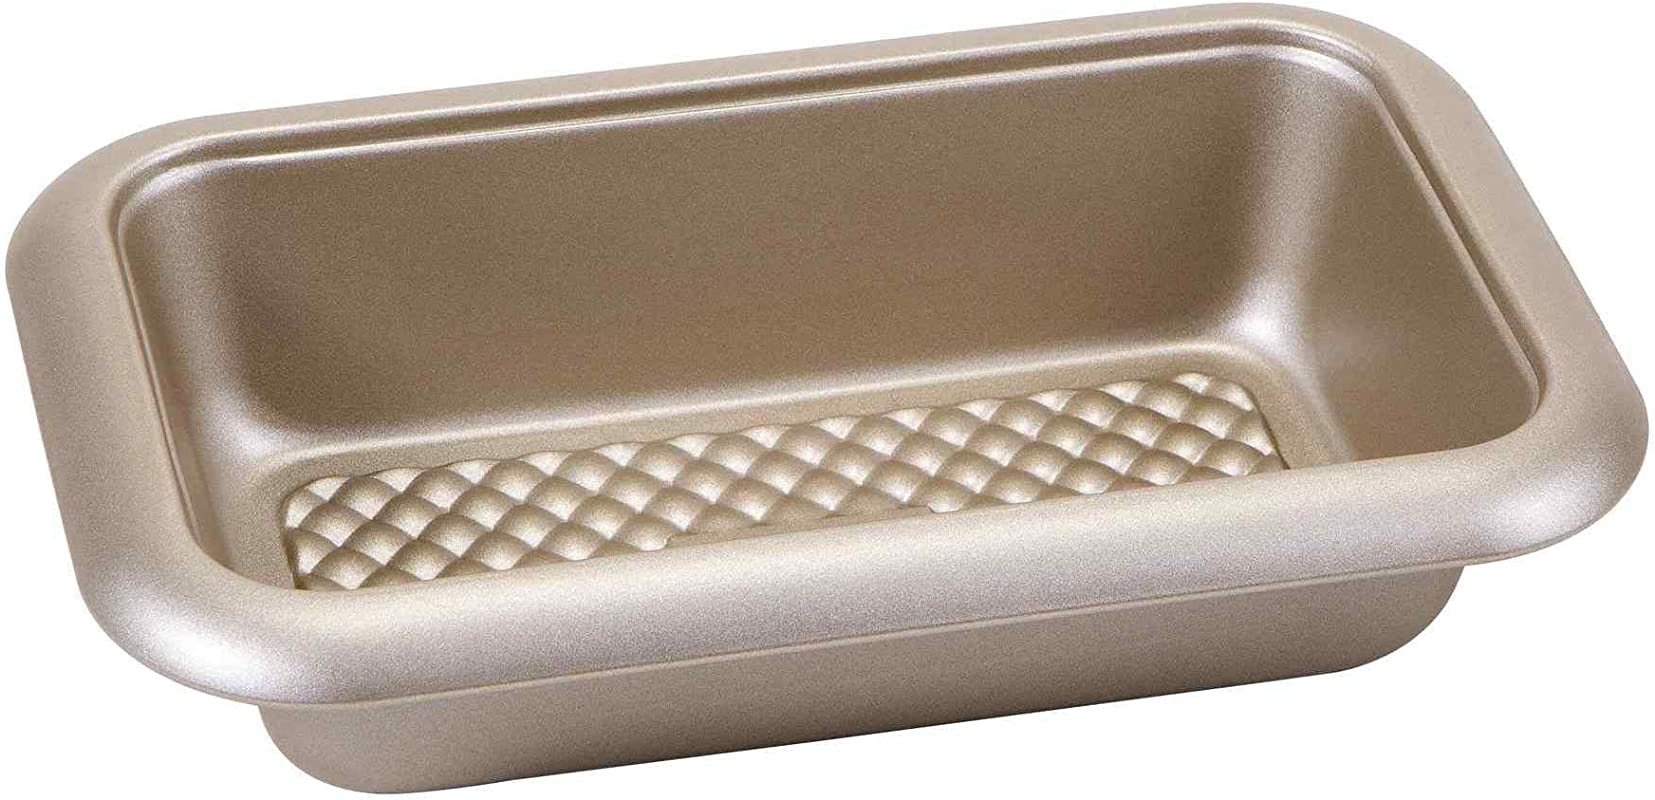 Chicago Metallic 5228745 Arch Textured Non Stick Loaf Baking Pan 9 5 Inch 5 5 Inch Champagne